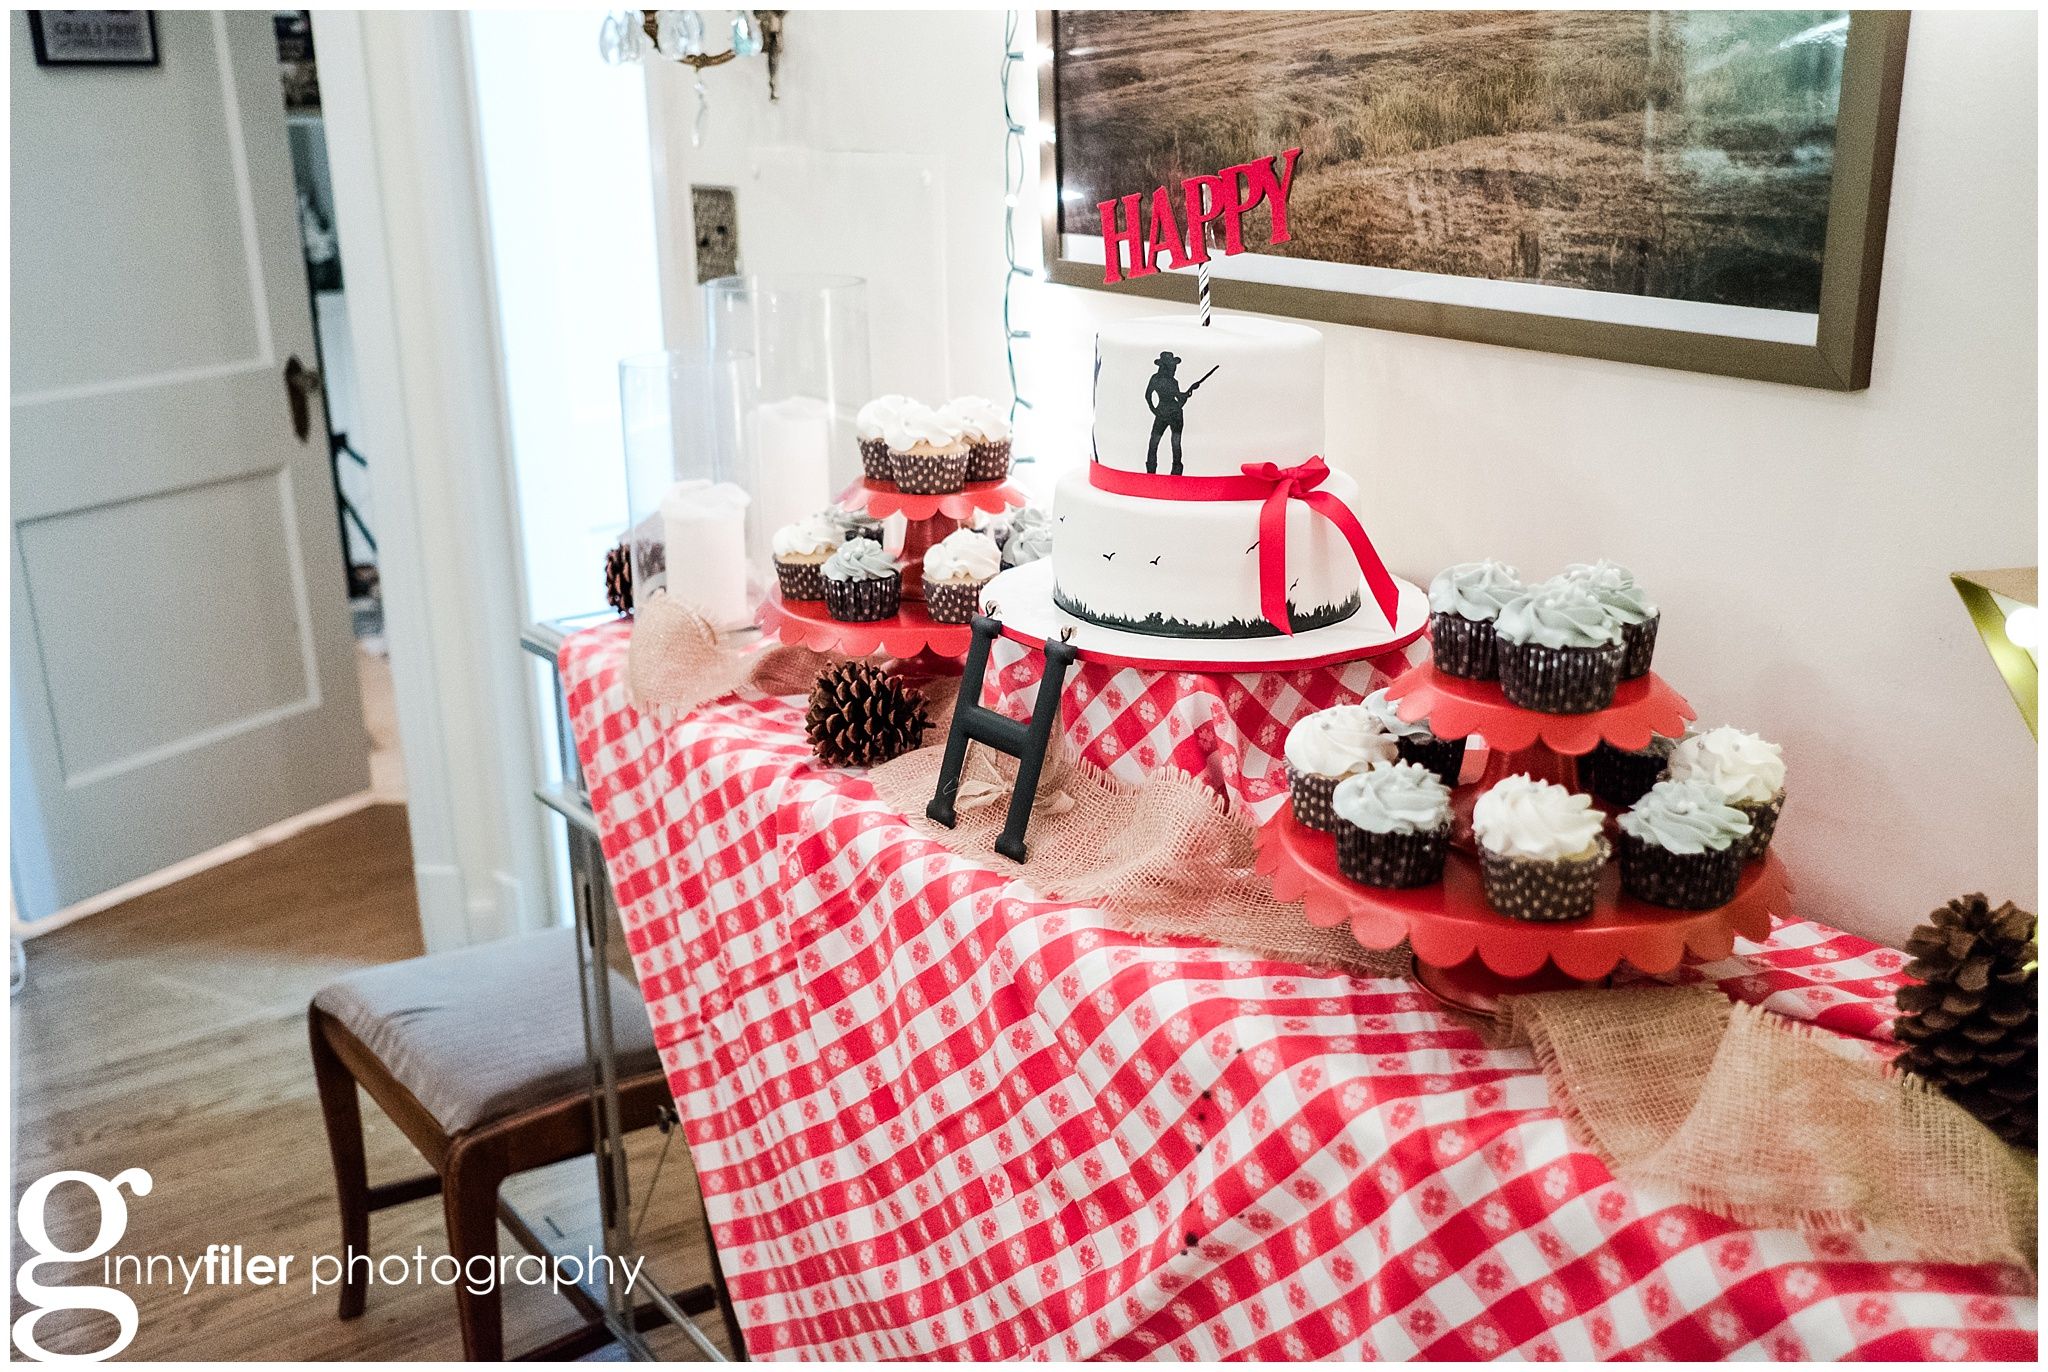 Hollyparty_0002